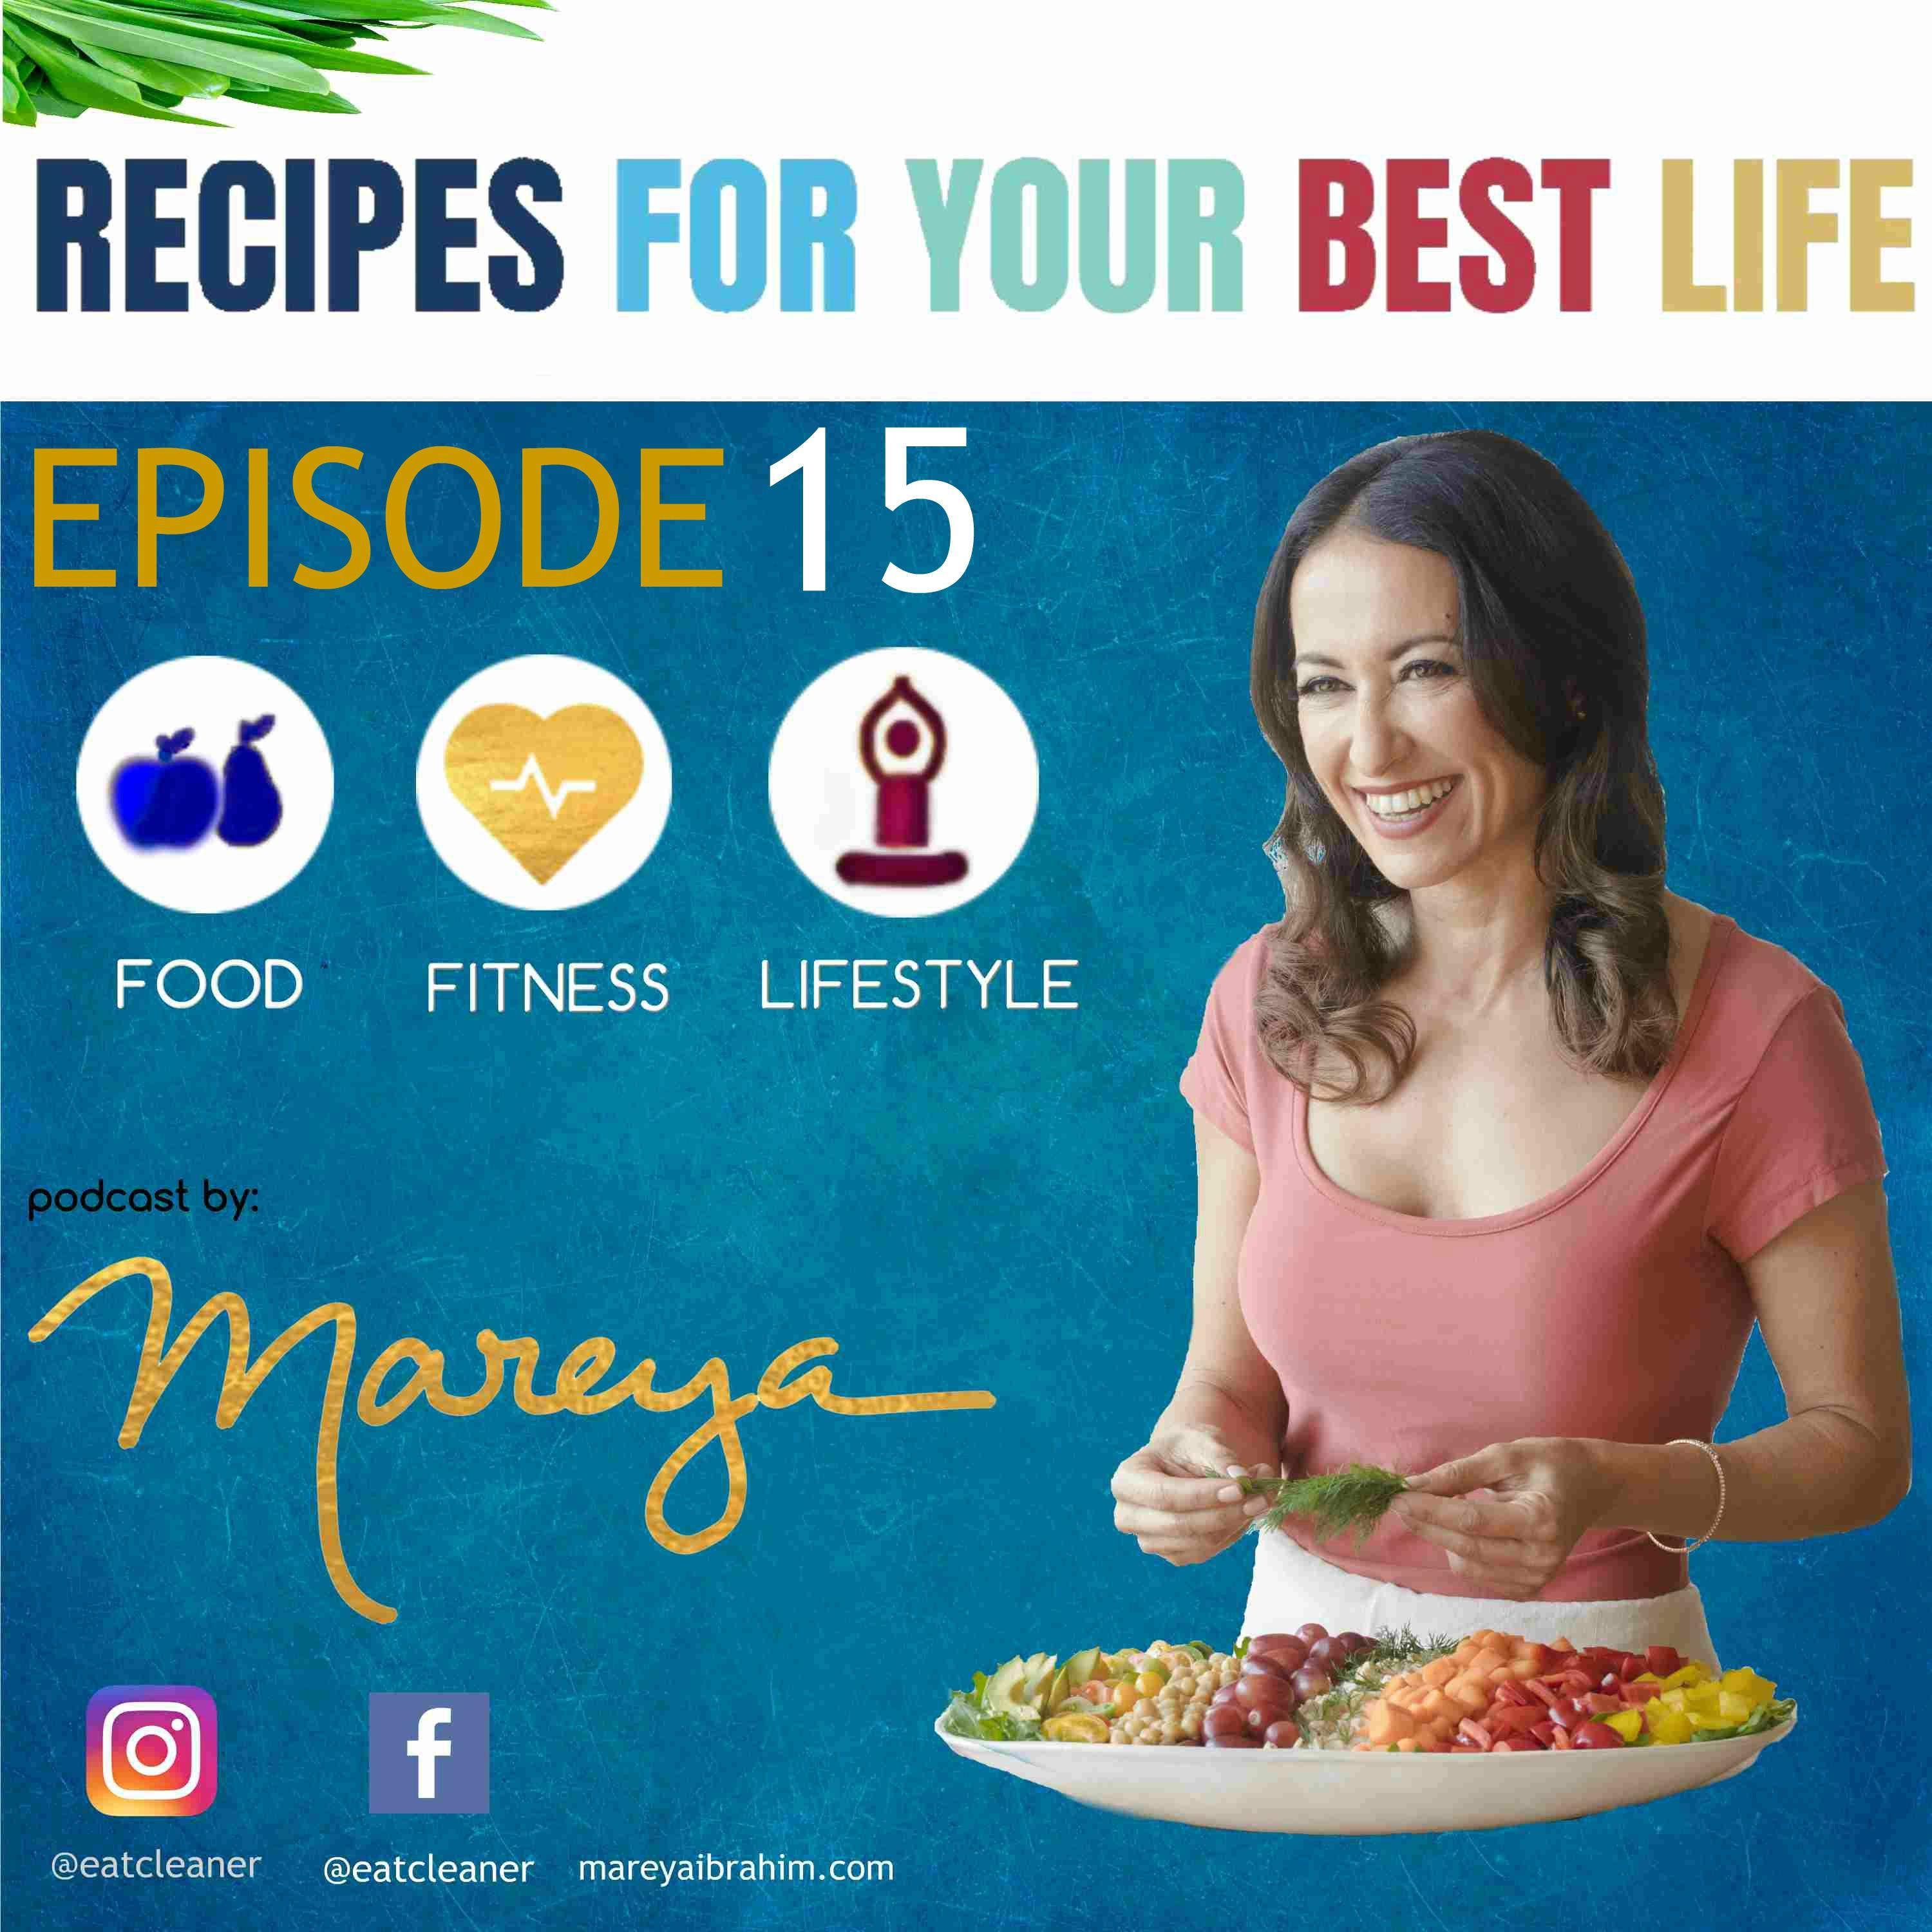 Recipes for Your Best Life - EP 15 - Sound Bites to Sink Your Teeth Into - 15th Episode Mash Up.mp3